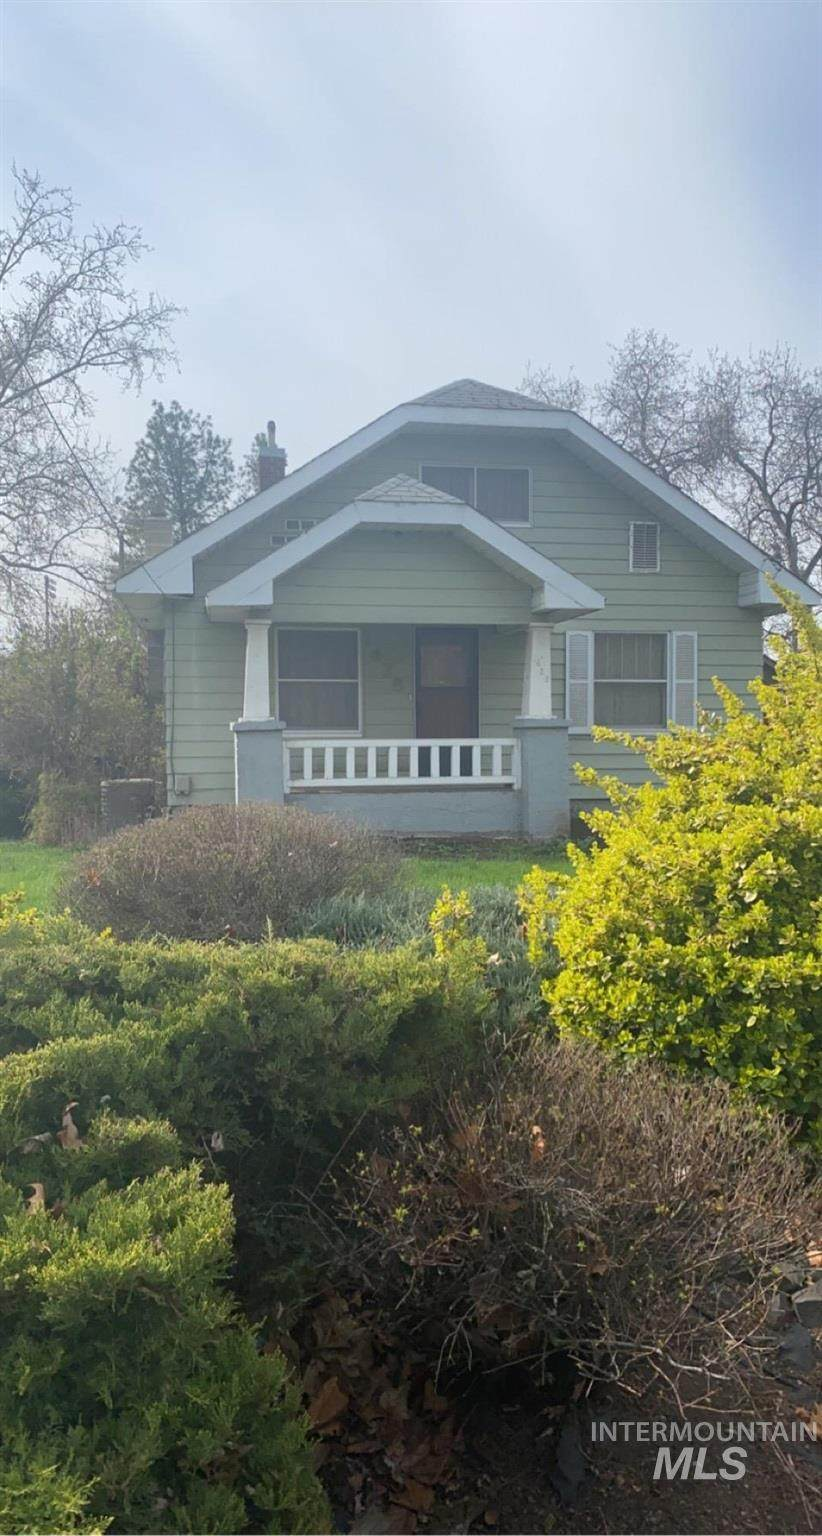 1428 10th Ave. - Photo 1